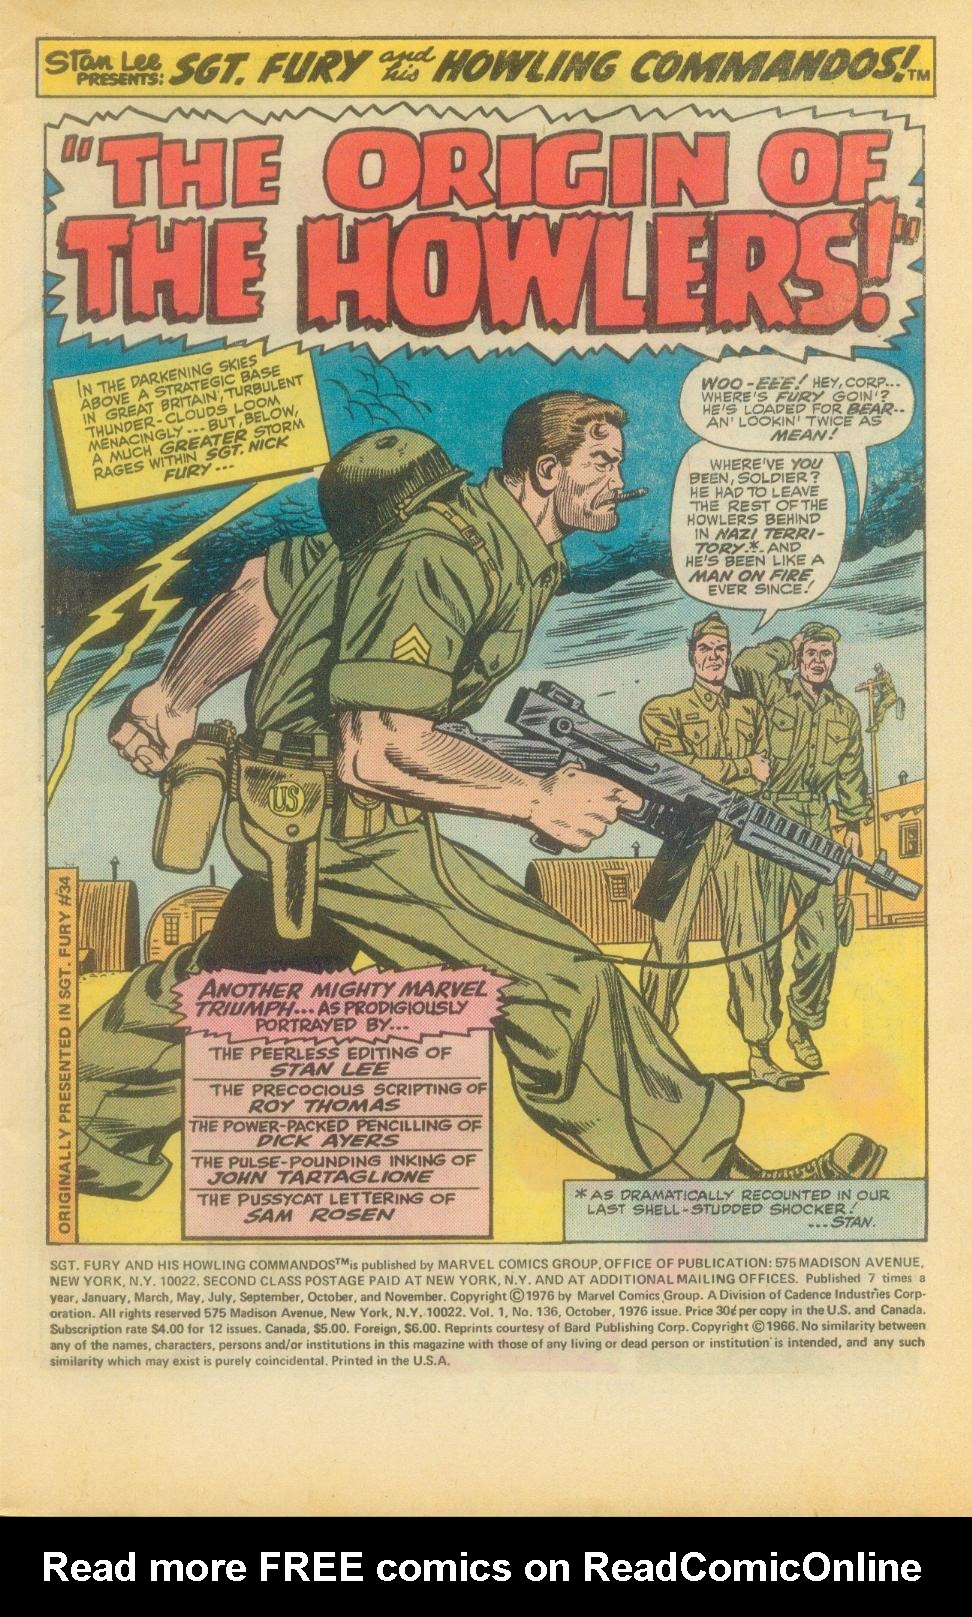 Read online Sgt. Fury comic -  Issue #136 - 3